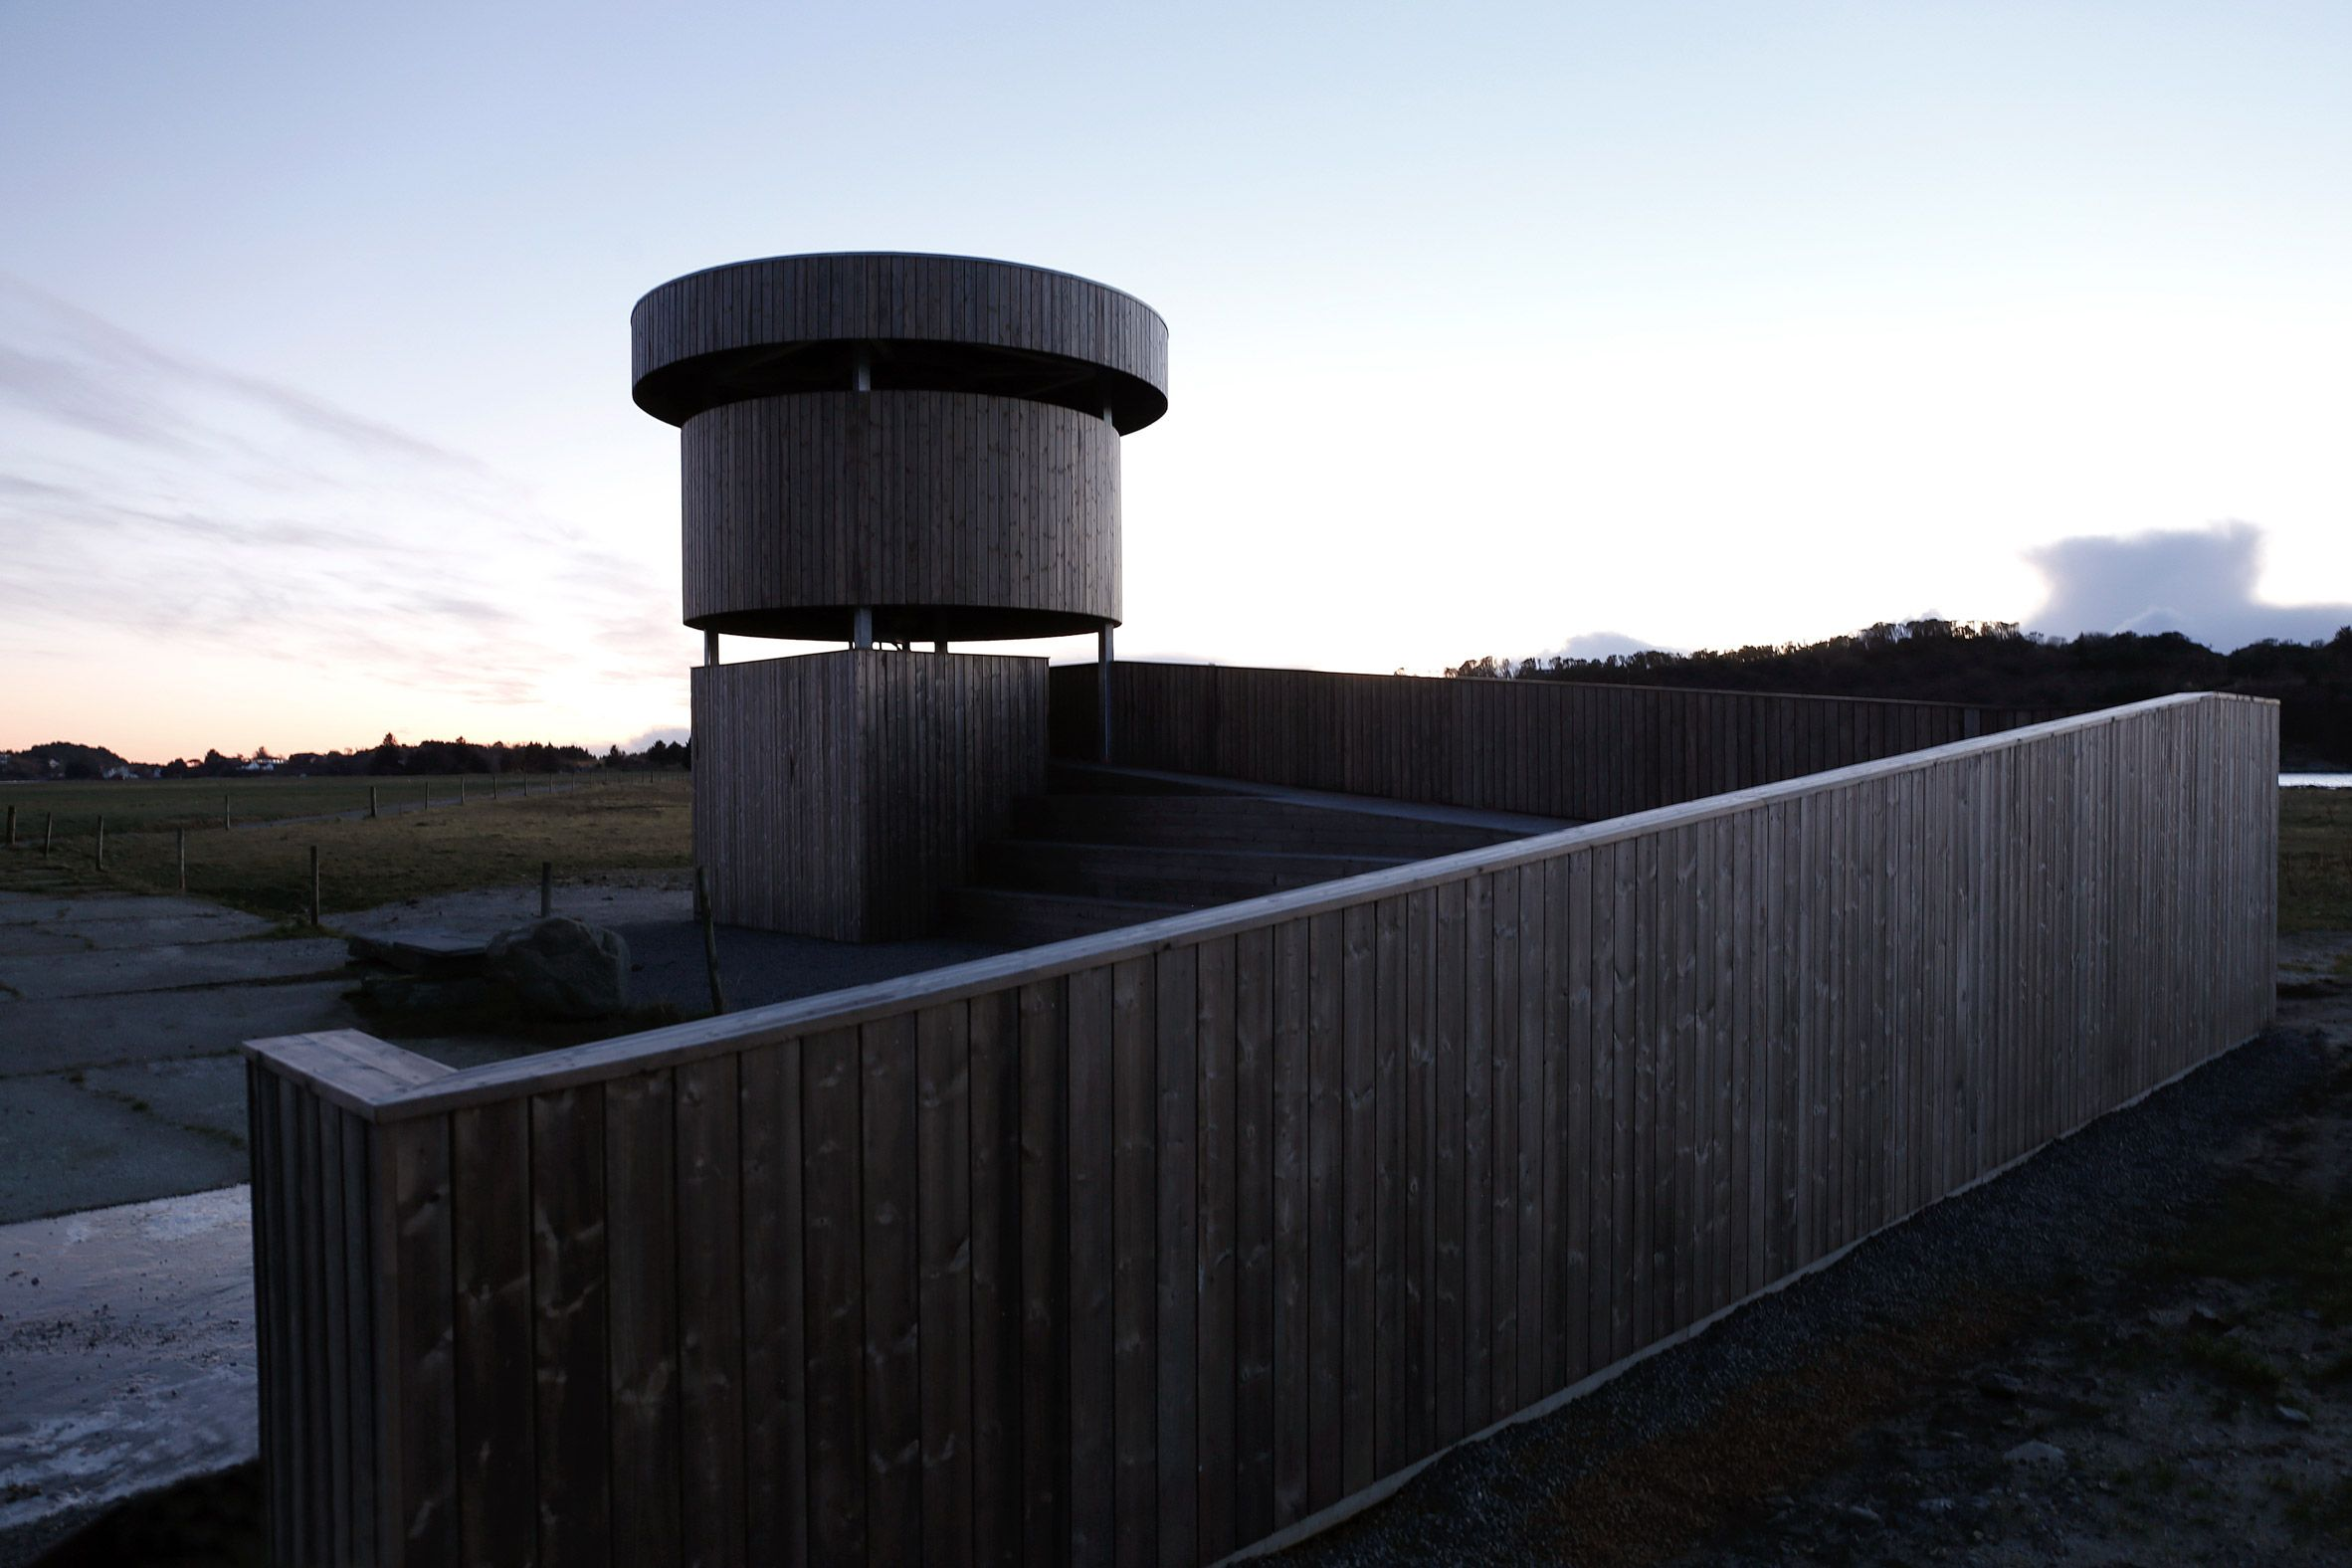 Herdla Birdwatching Tower By Ljb Arkitektur Arcitecture  # Muebles Calle Fatima